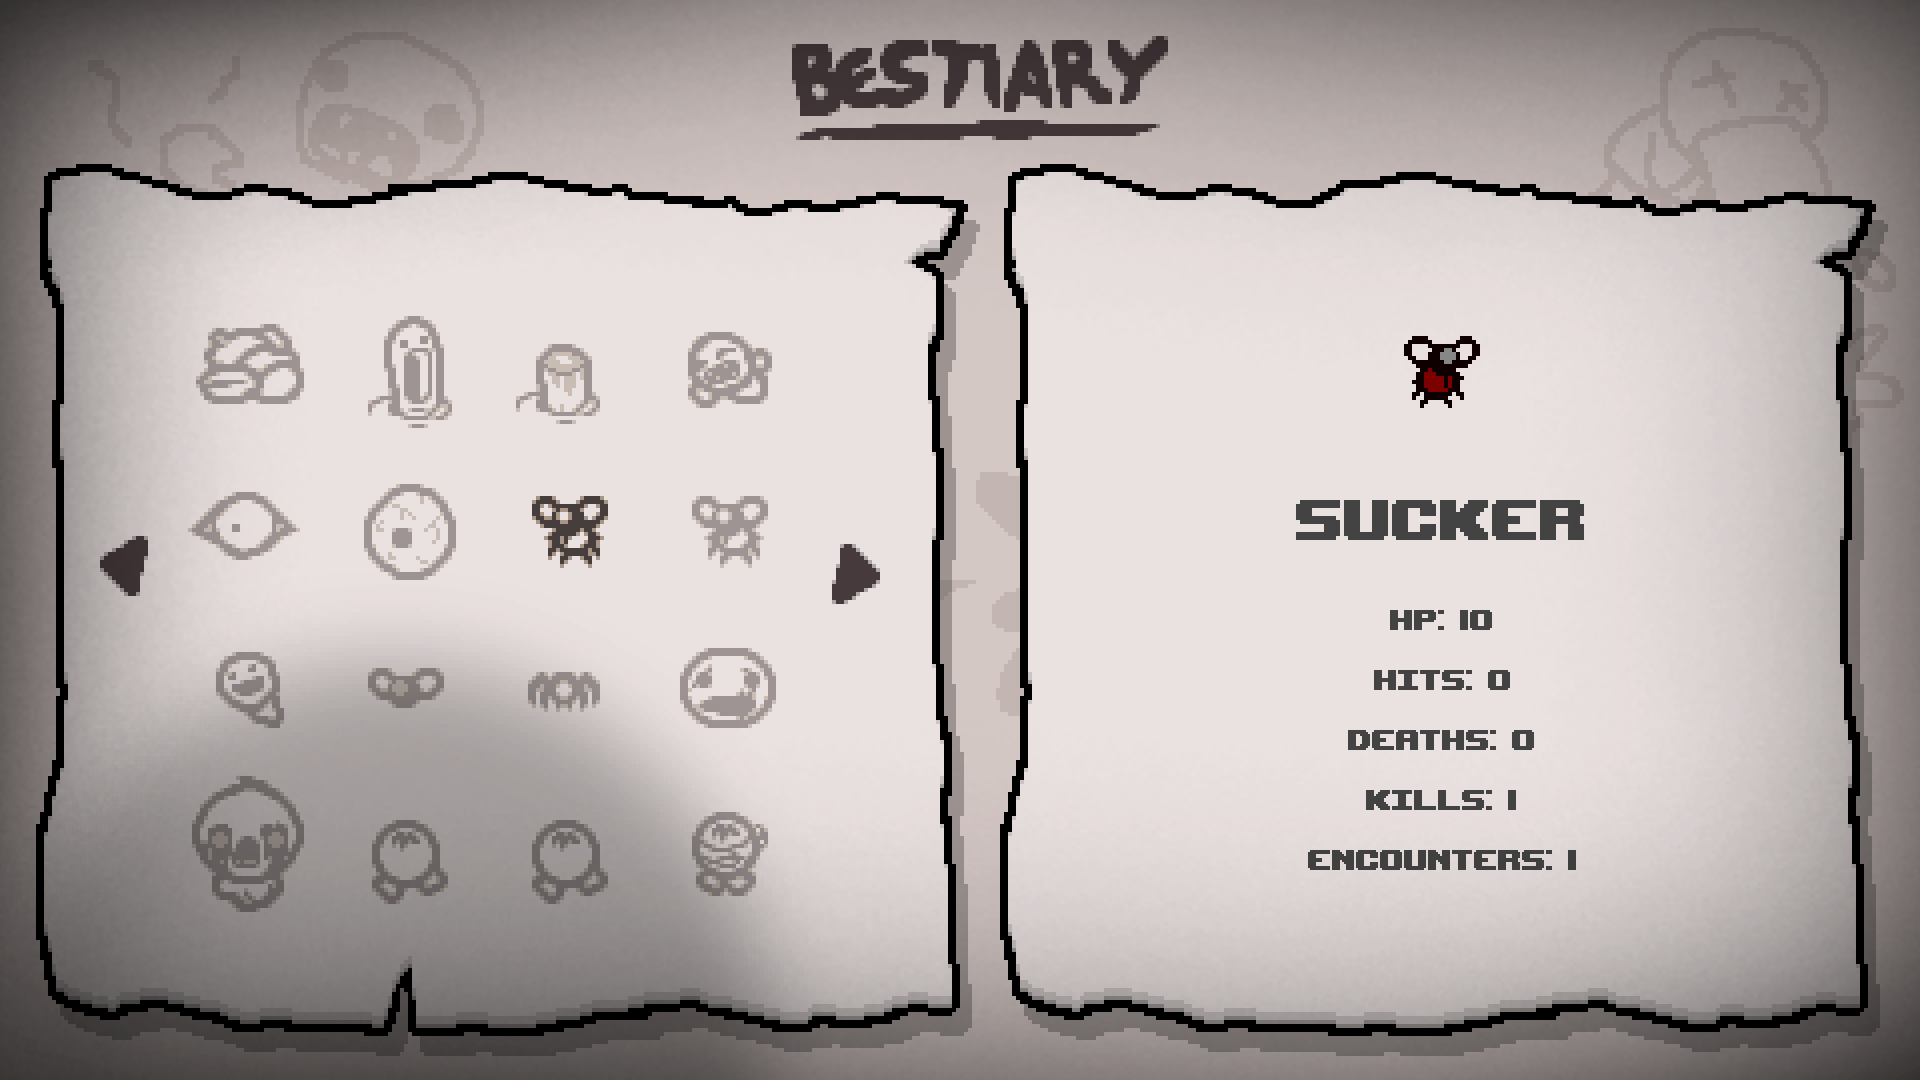 The new Beastiary tells you how many times you have encountered an enemy